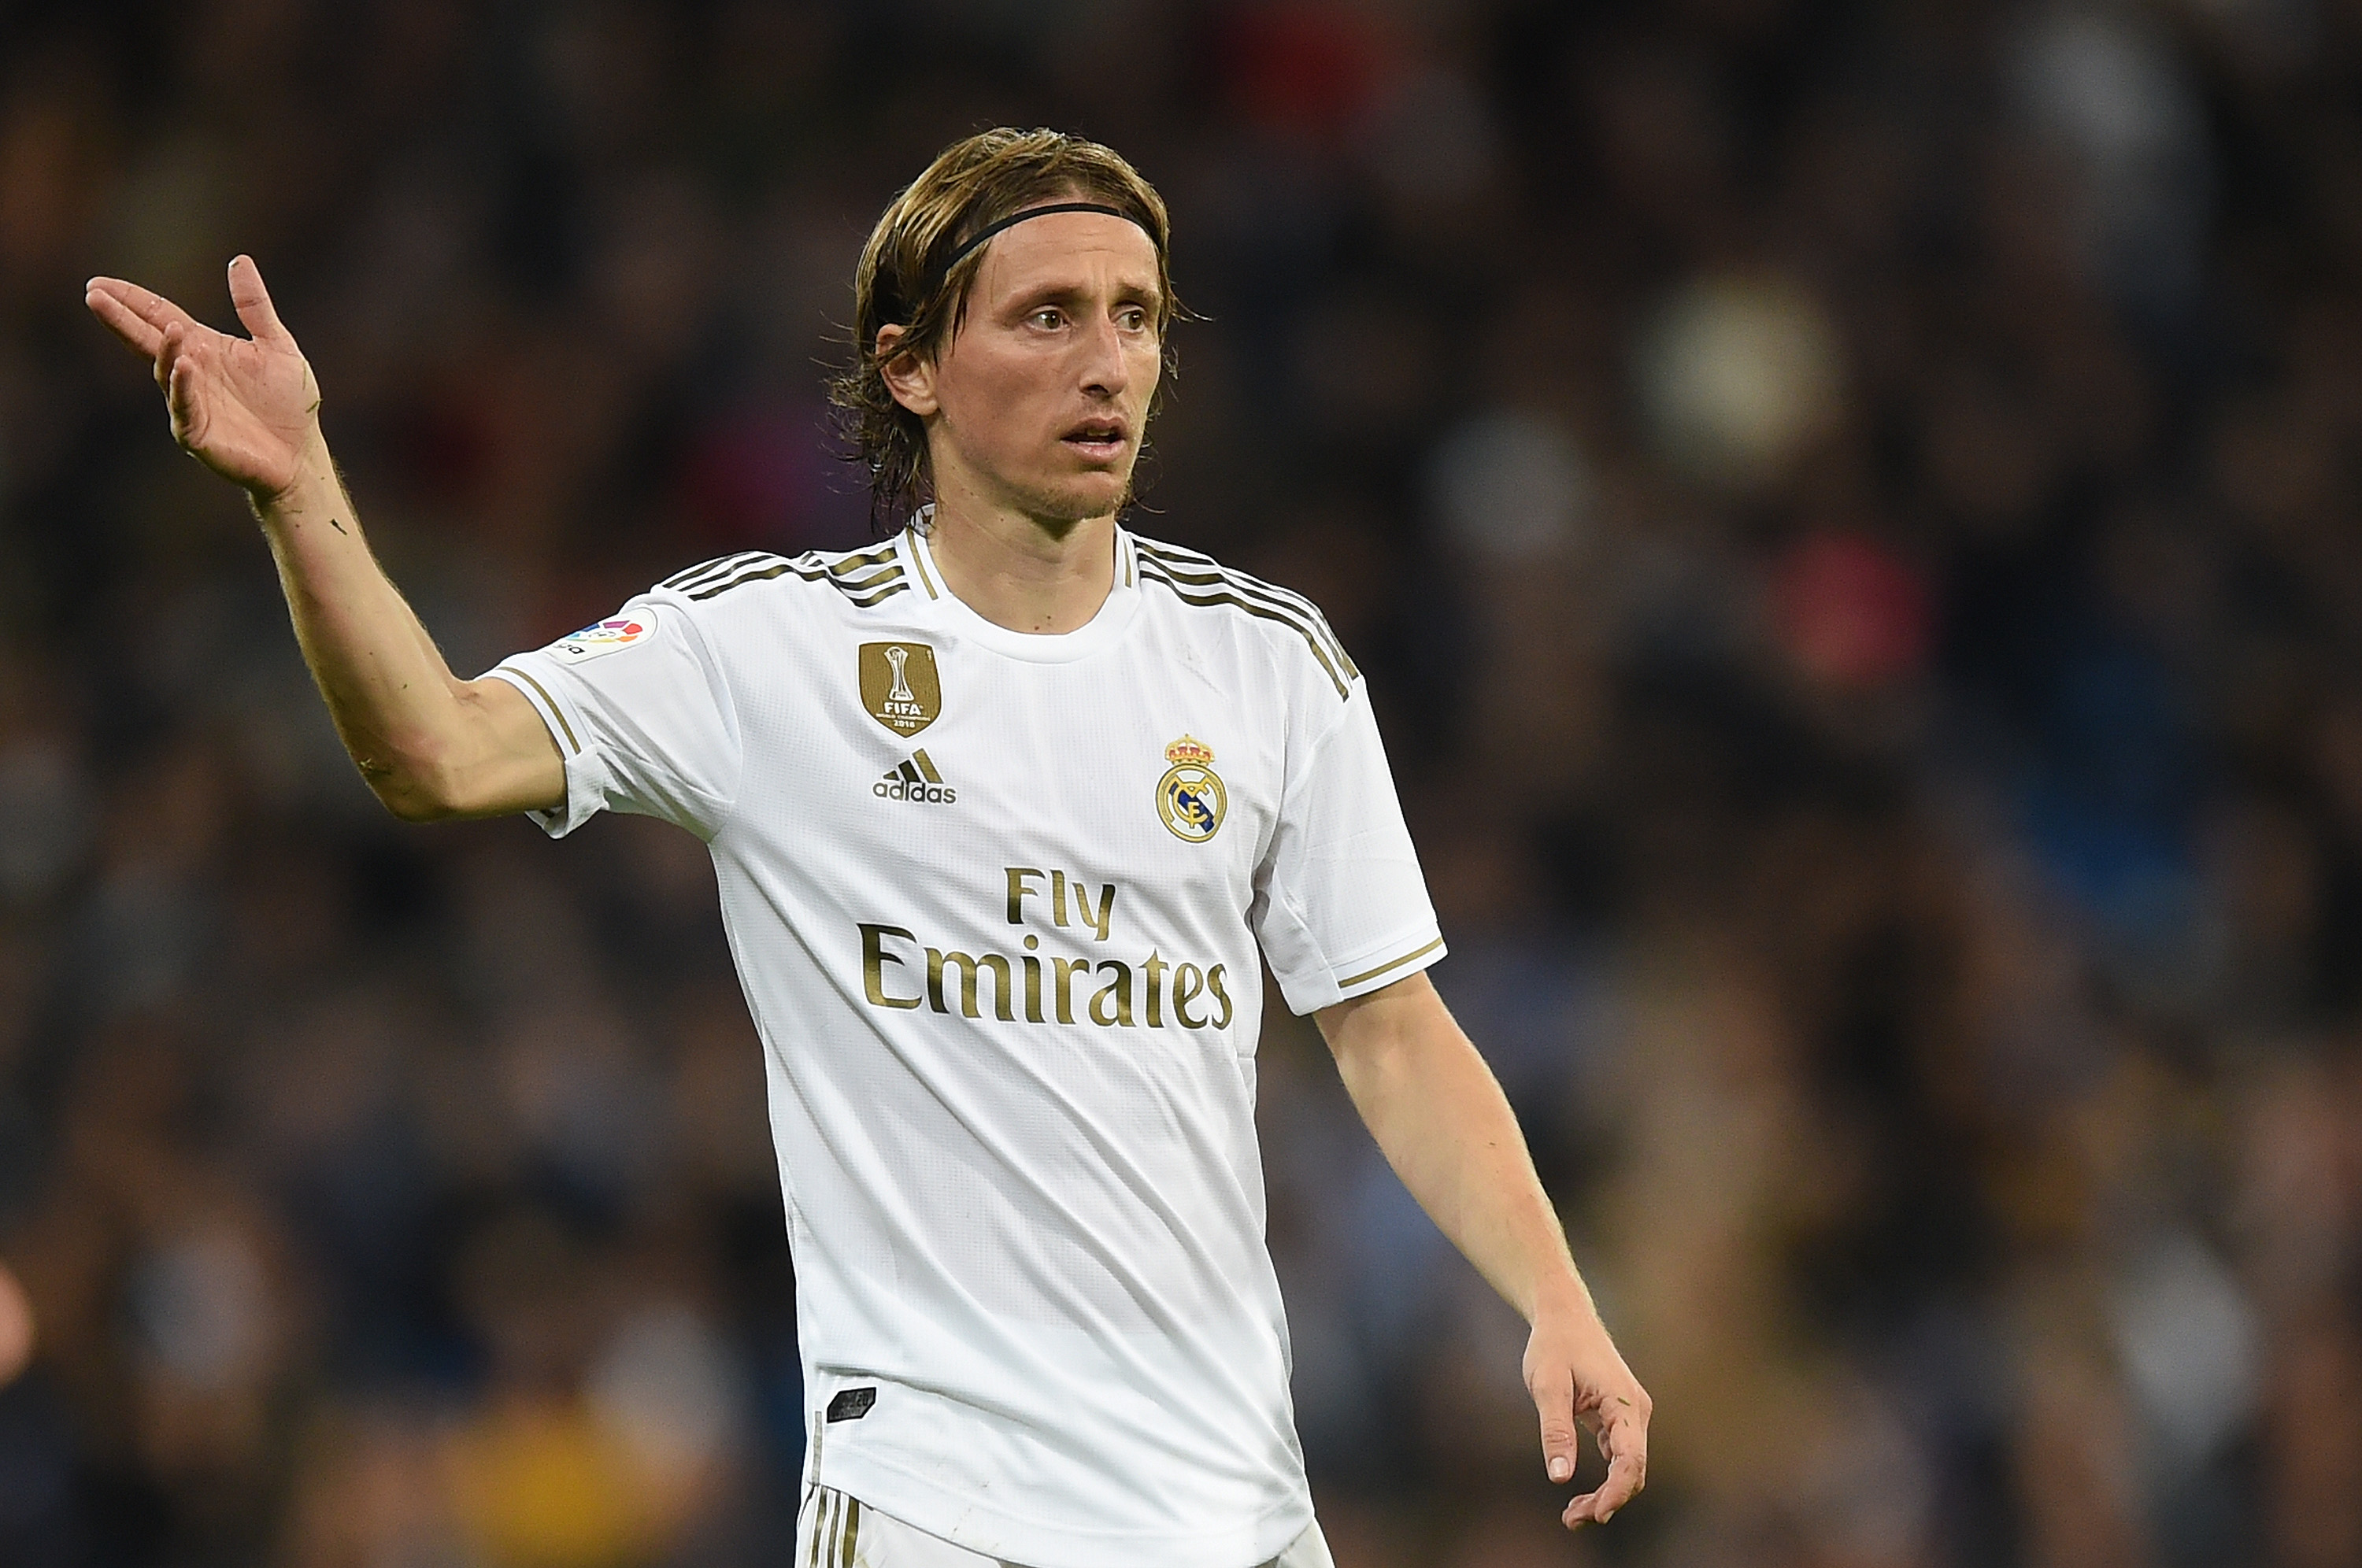 Luka Modric will not be involved against Granada (Photo by Denis Doyle/Getty Images)